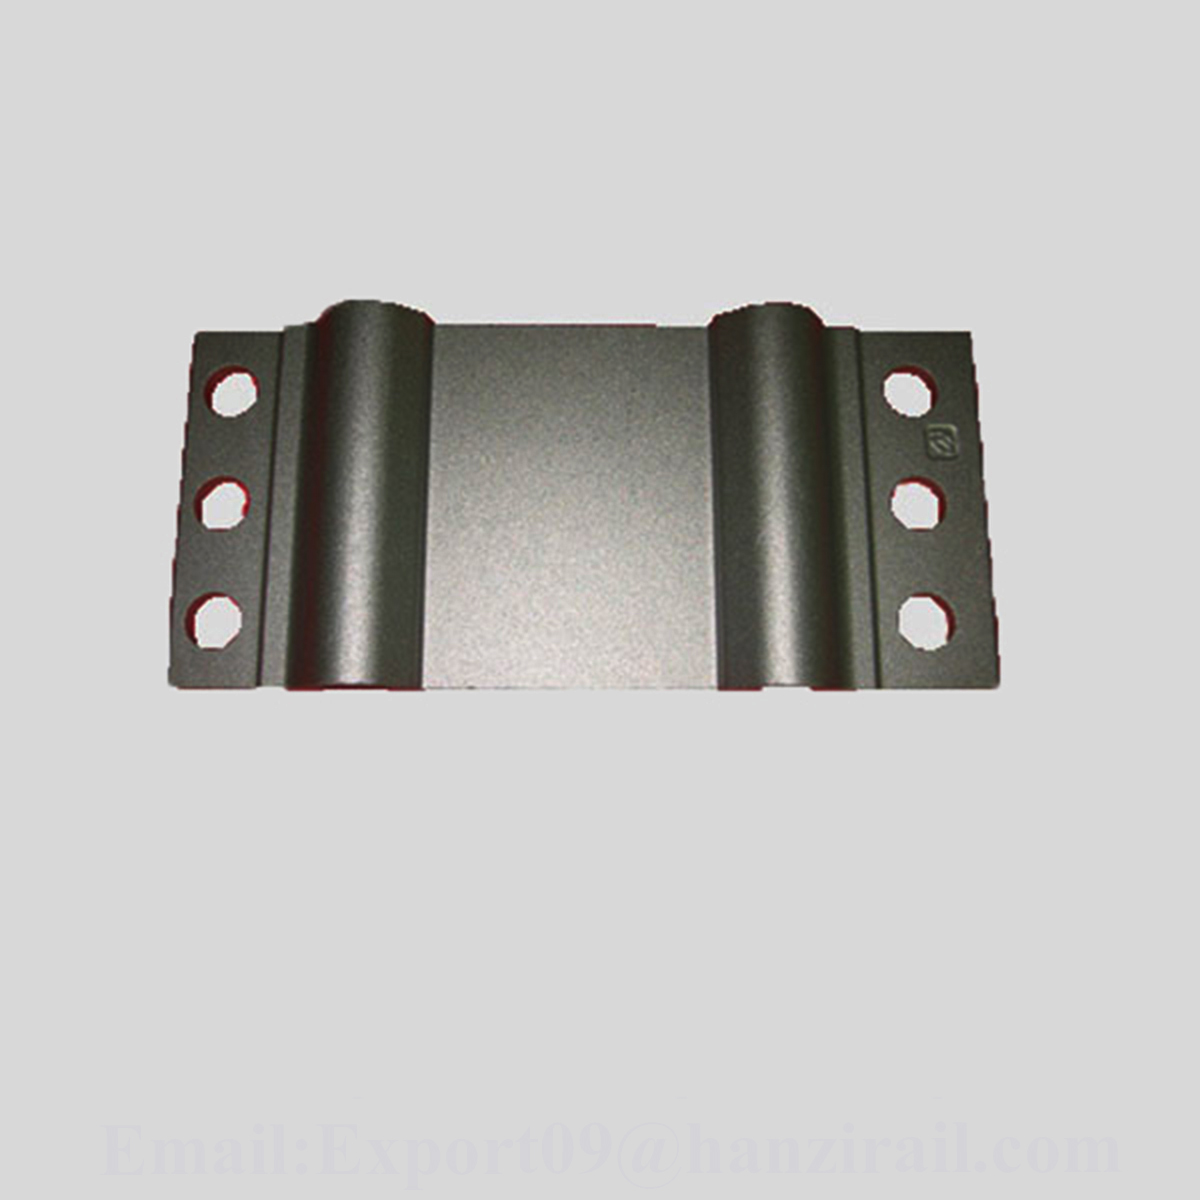 Railway Baseplate Rail Tie Plate Steel Under Rail Supply